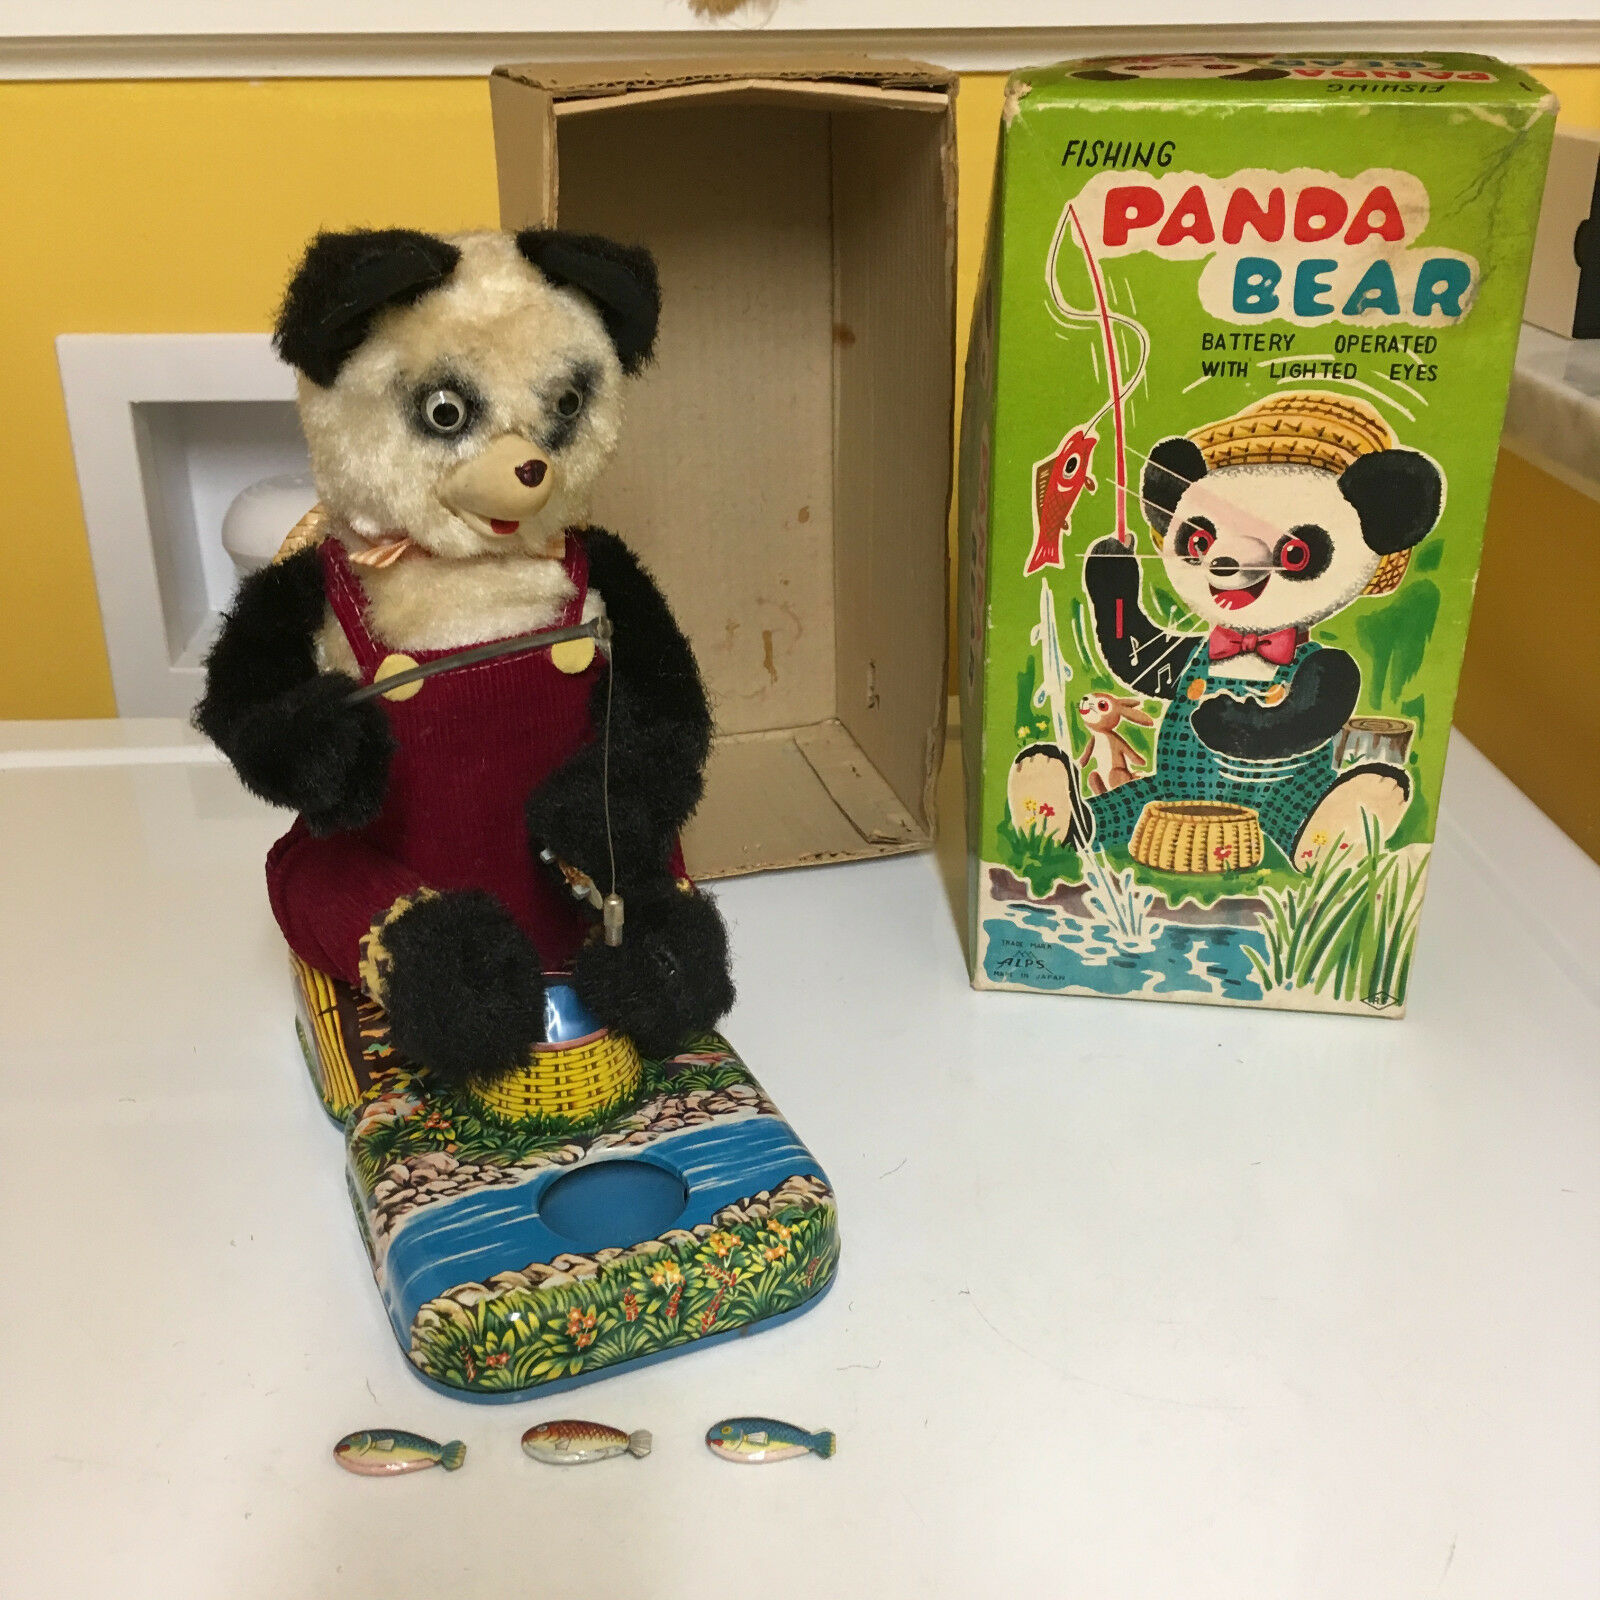 ALPS VINTAGE BATTERY OPERATED FISHING PANDA BEAR. COMPLETE & FULLY WORKING W BOX